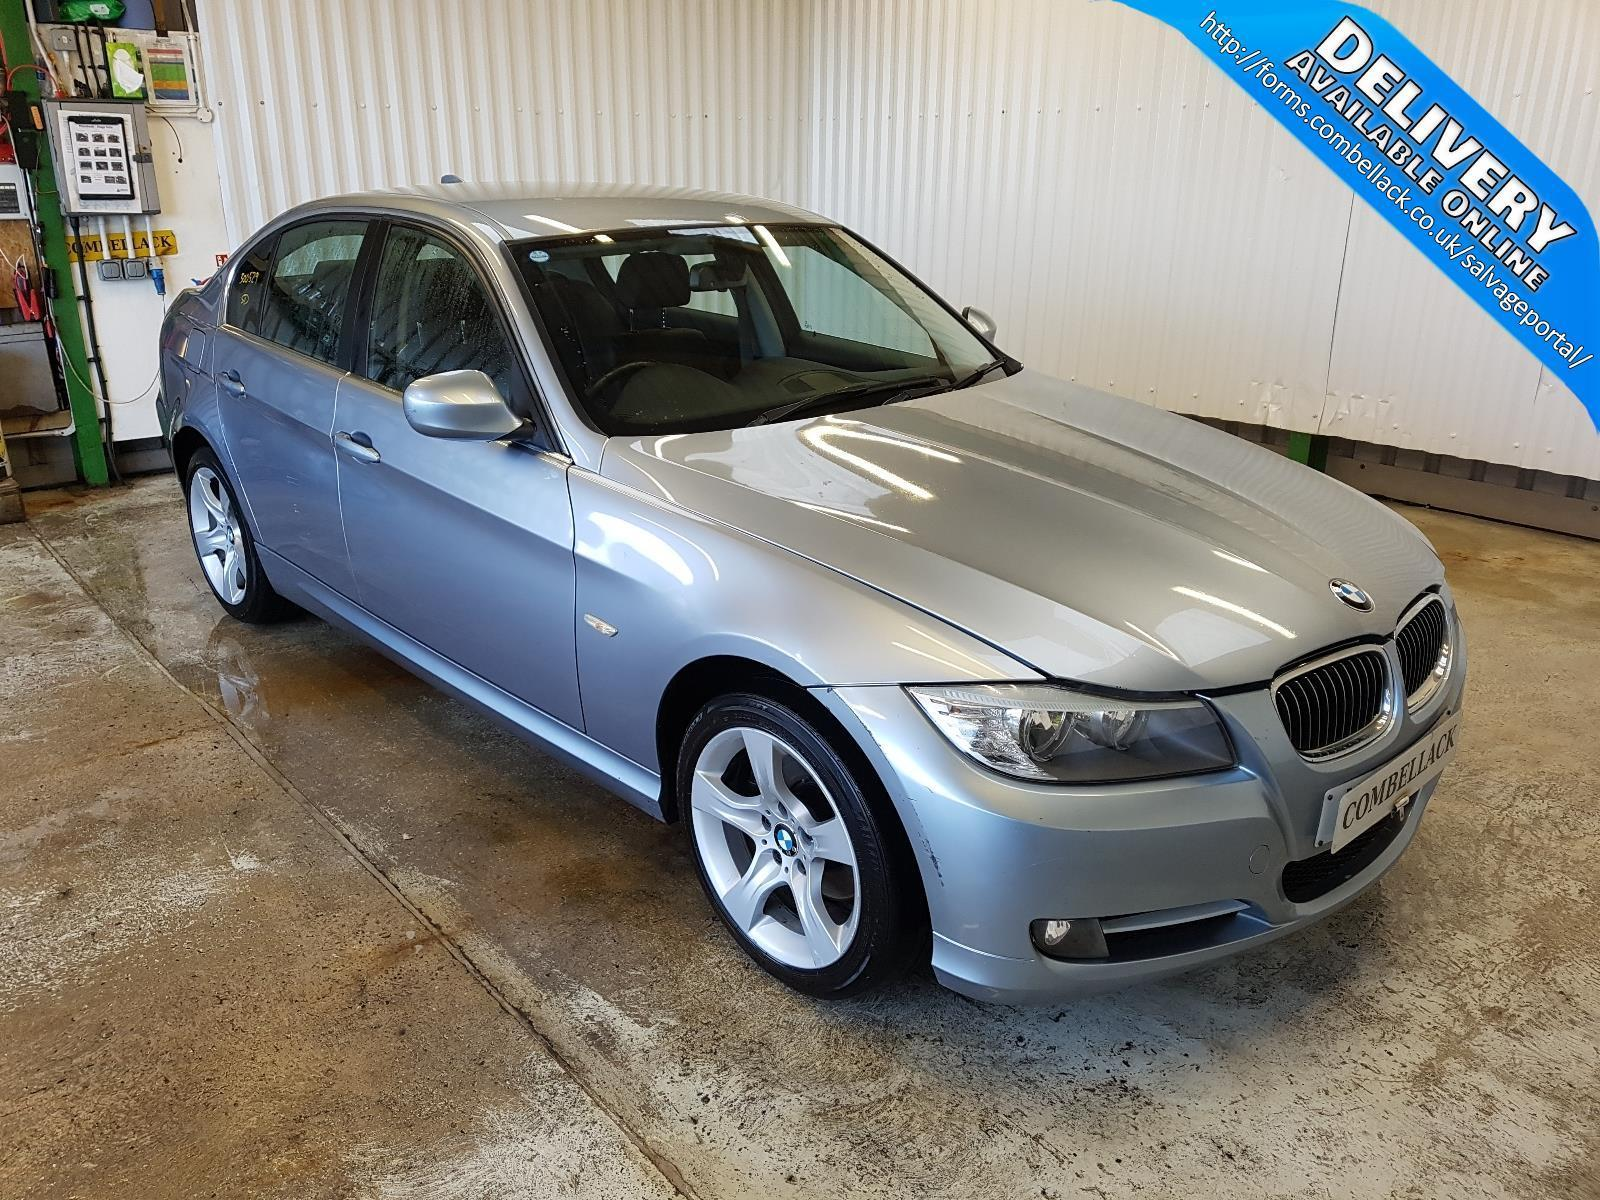 2011 BMW 3 SERIES 320D EXCLUSIVE EDITION 1995cc TURBO DIESEL AUTOMATIC 4 DOOR SALOON